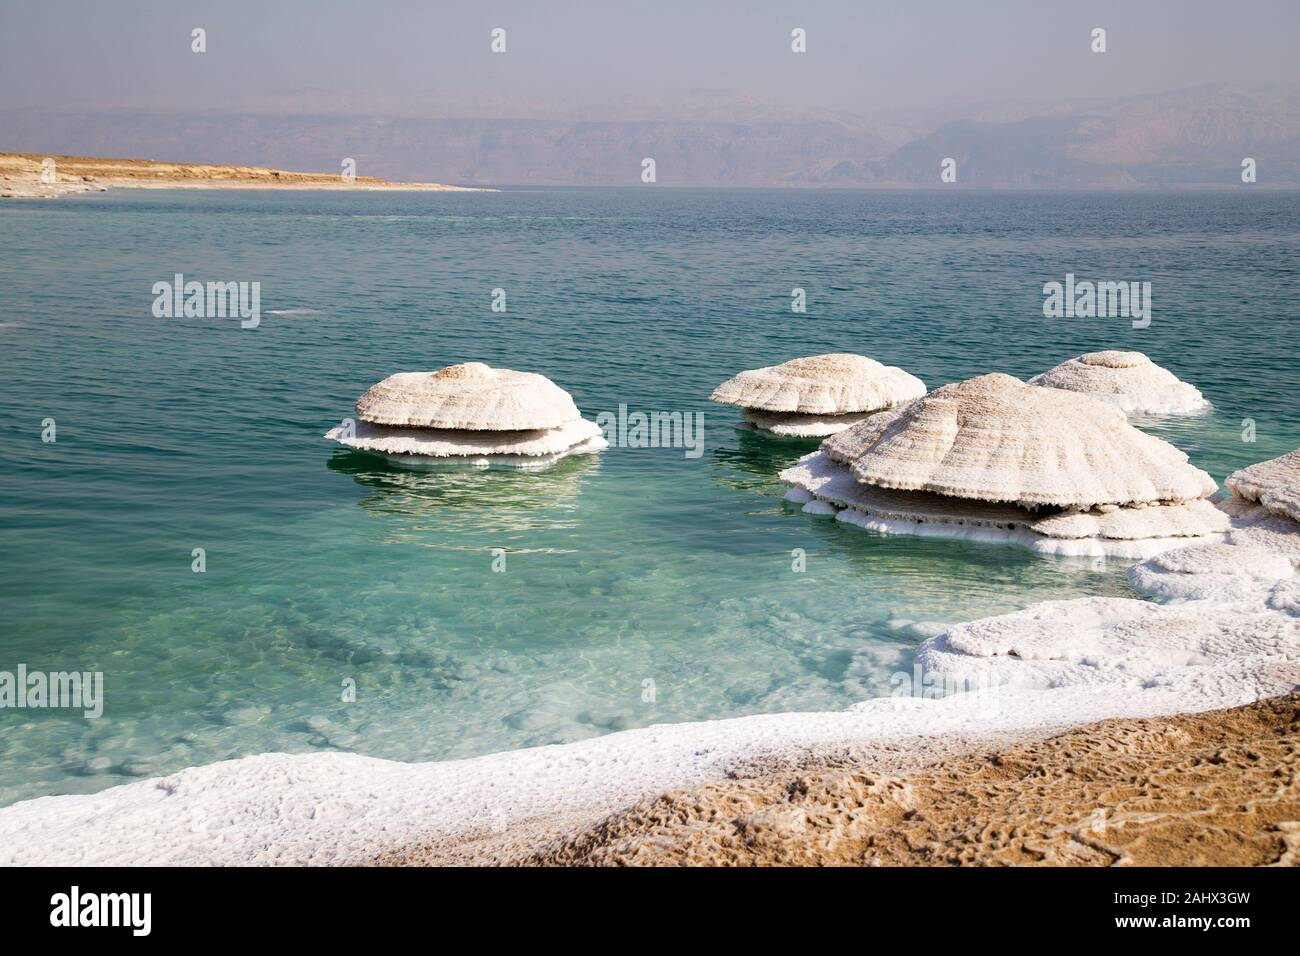 Dead Sea salt chimneys. They form where fresh water flows into the saline water, and are exposed as water levels drop. Stock Photo